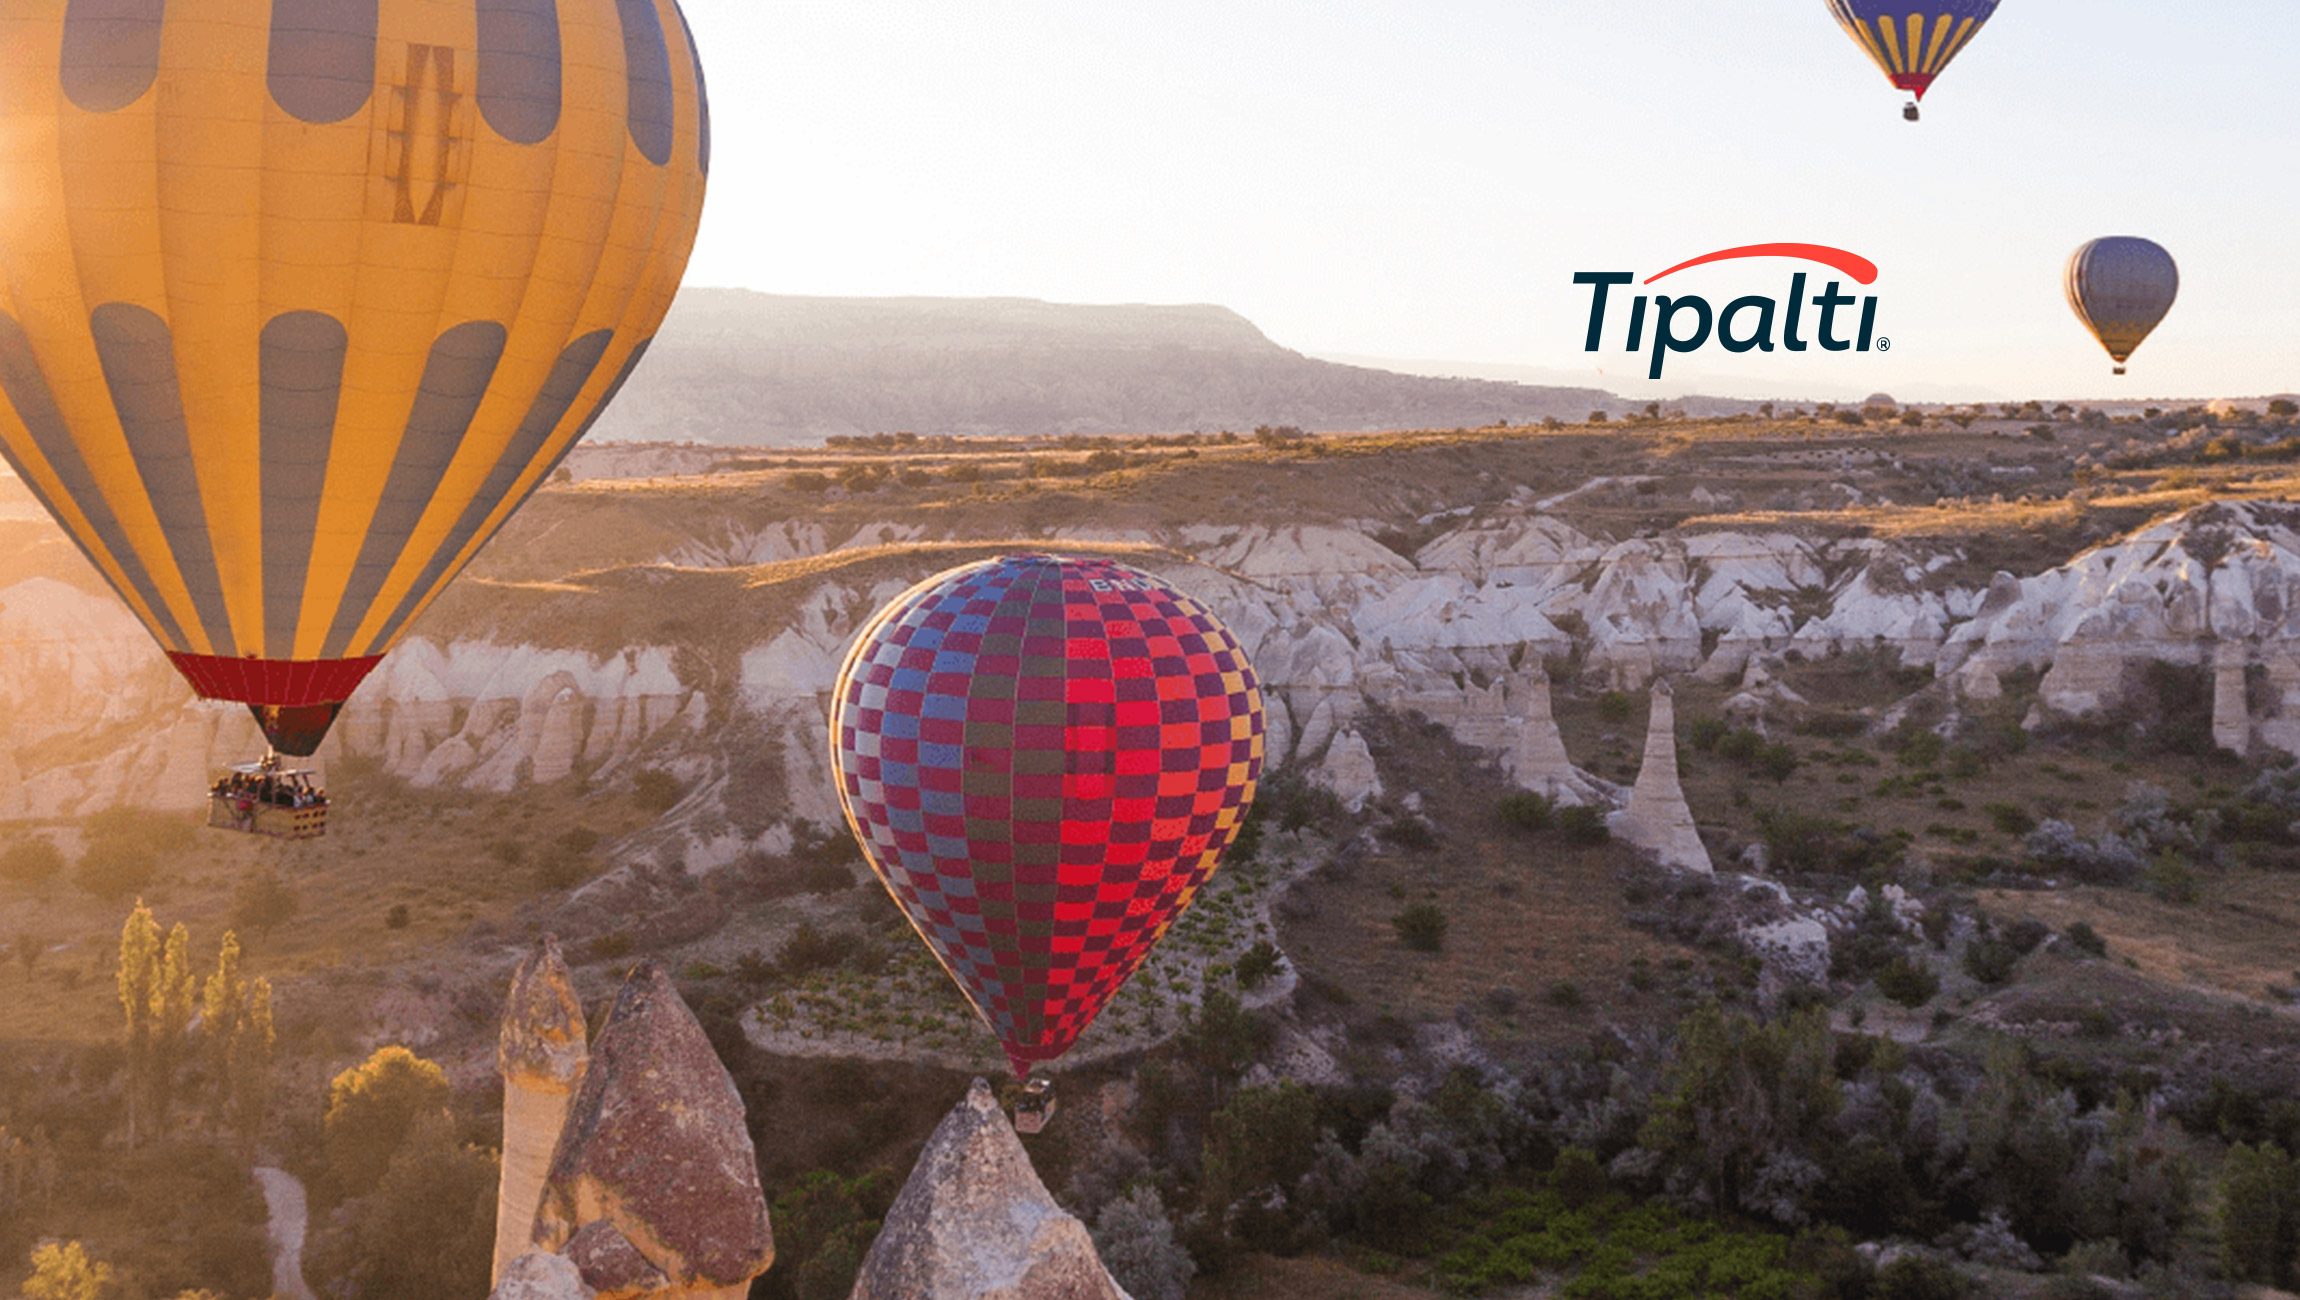 Tipalti Partners with Everflow to Provide Performance Marketing Tracking, Analytics, and Global Publisher Payouts in One Platform